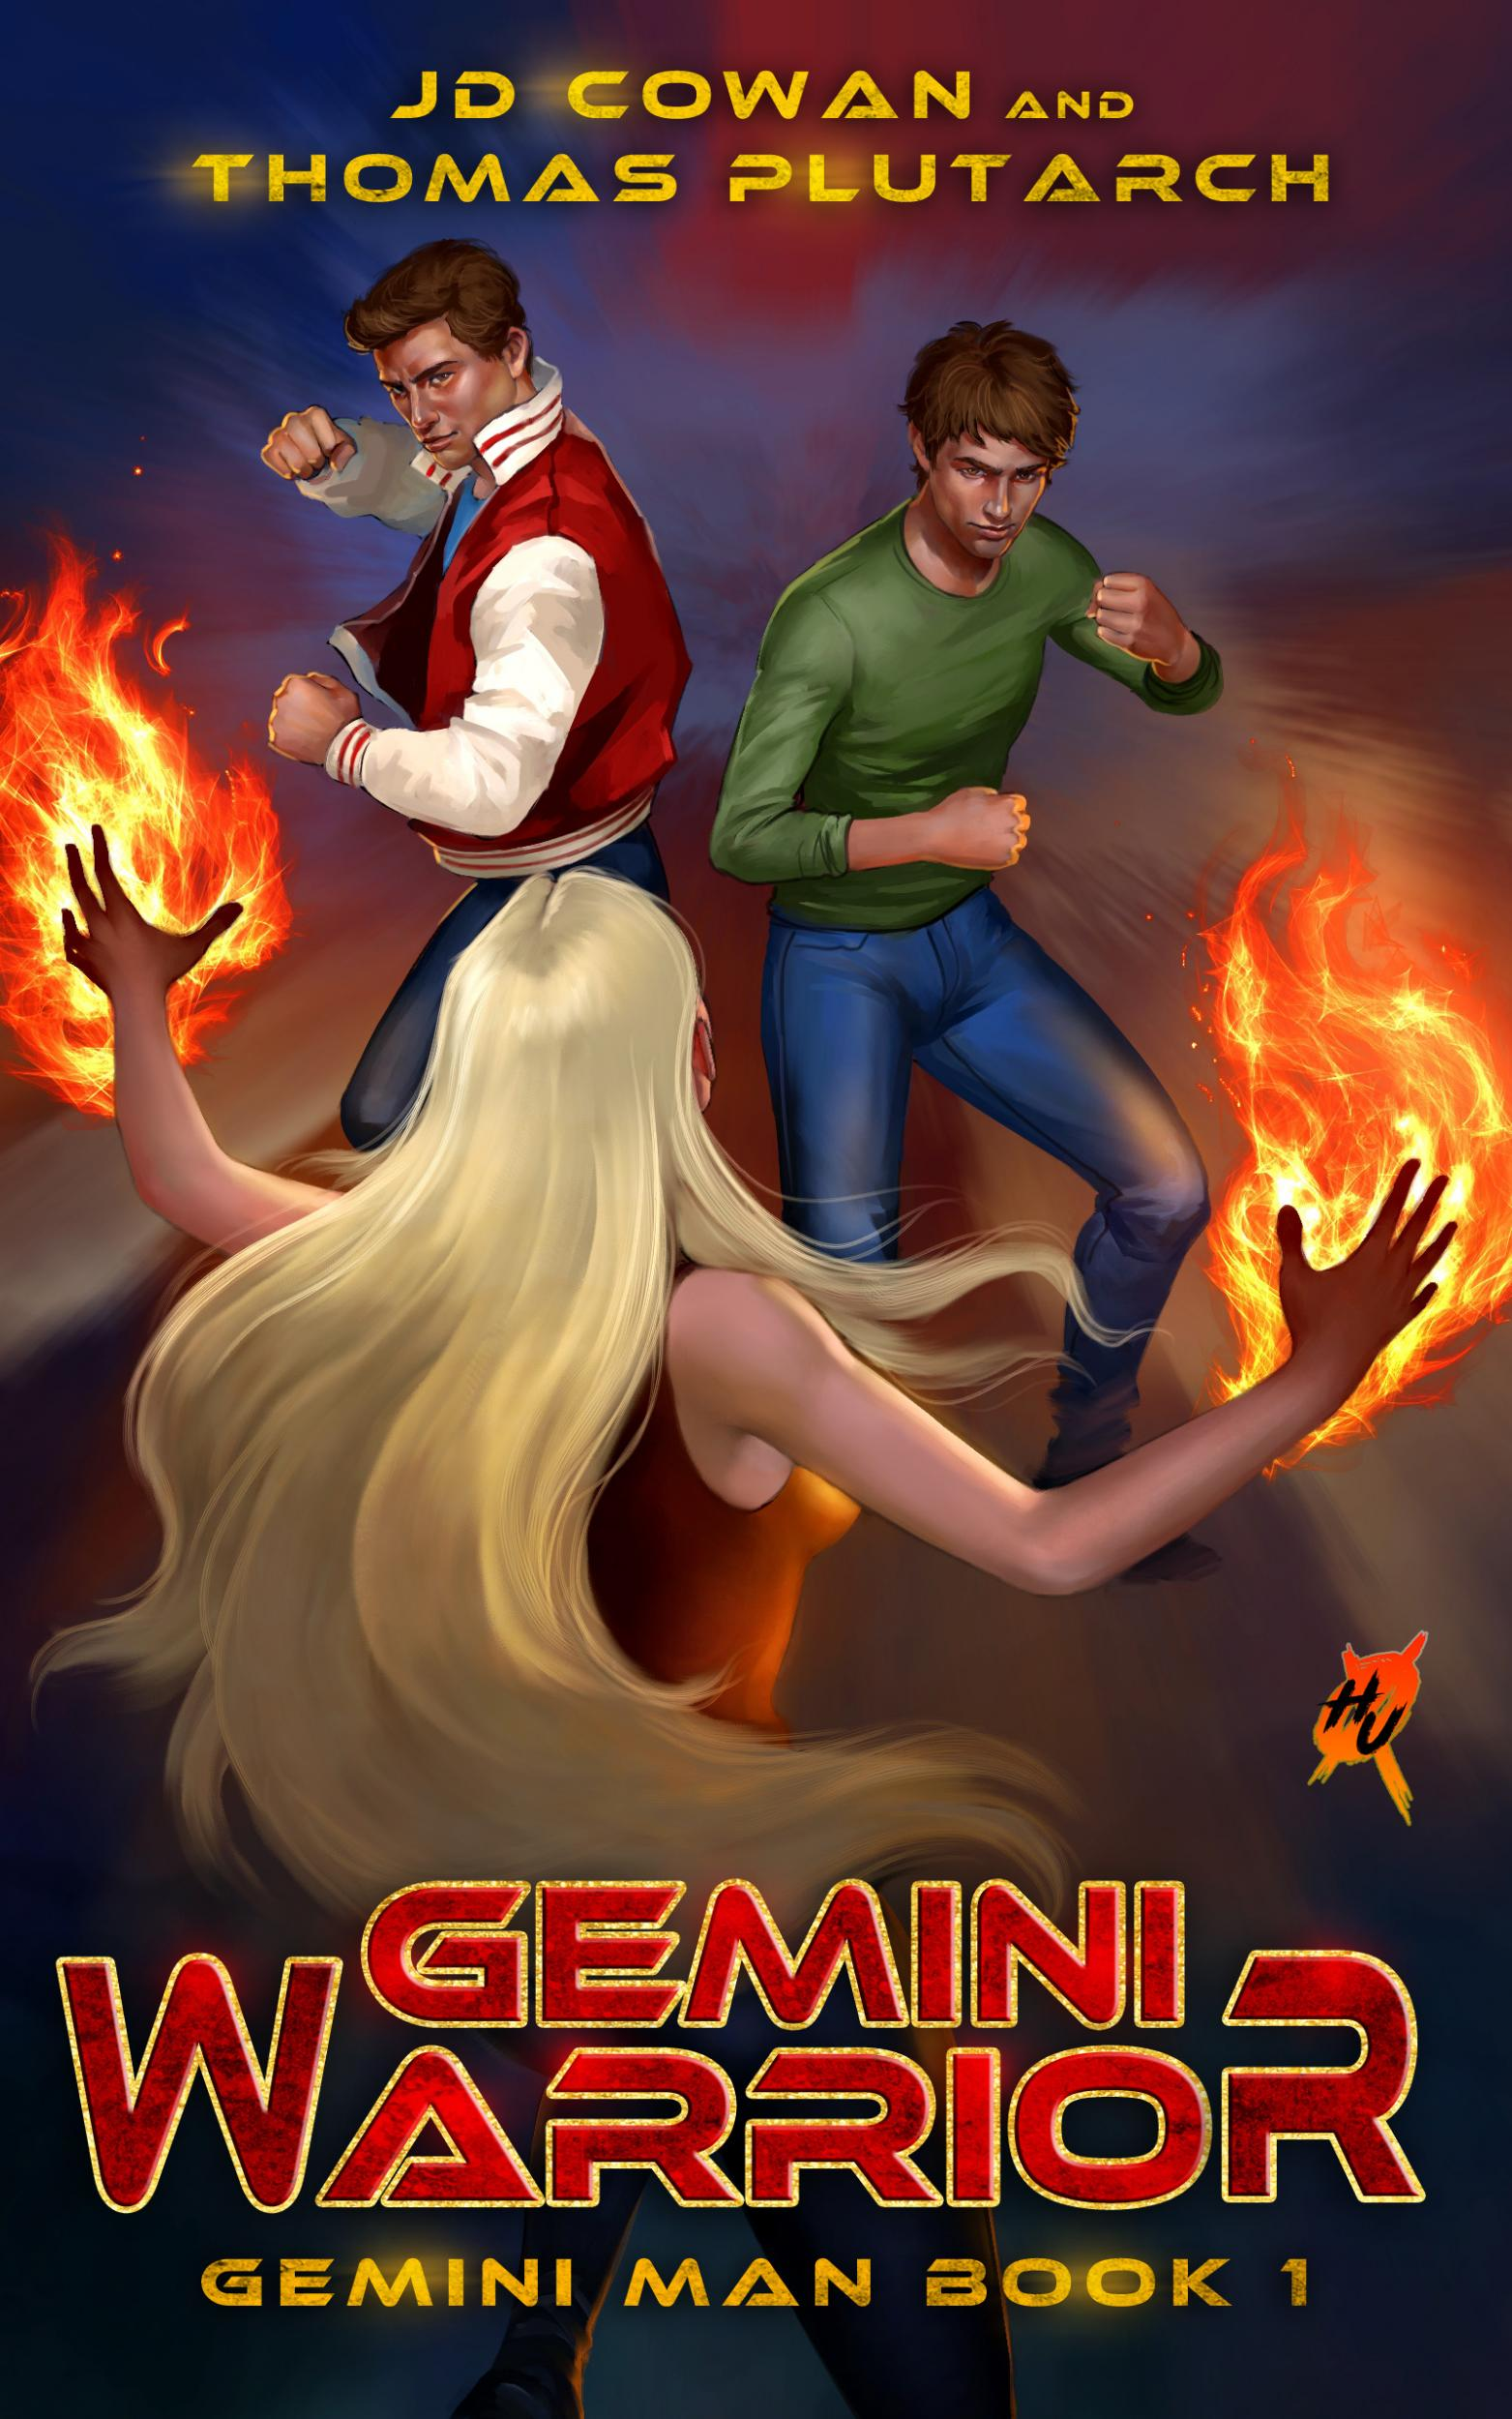 Gemini Warrior: Gemini Man book 1 by J. D. Cowan Published by Silver Empire (2019)